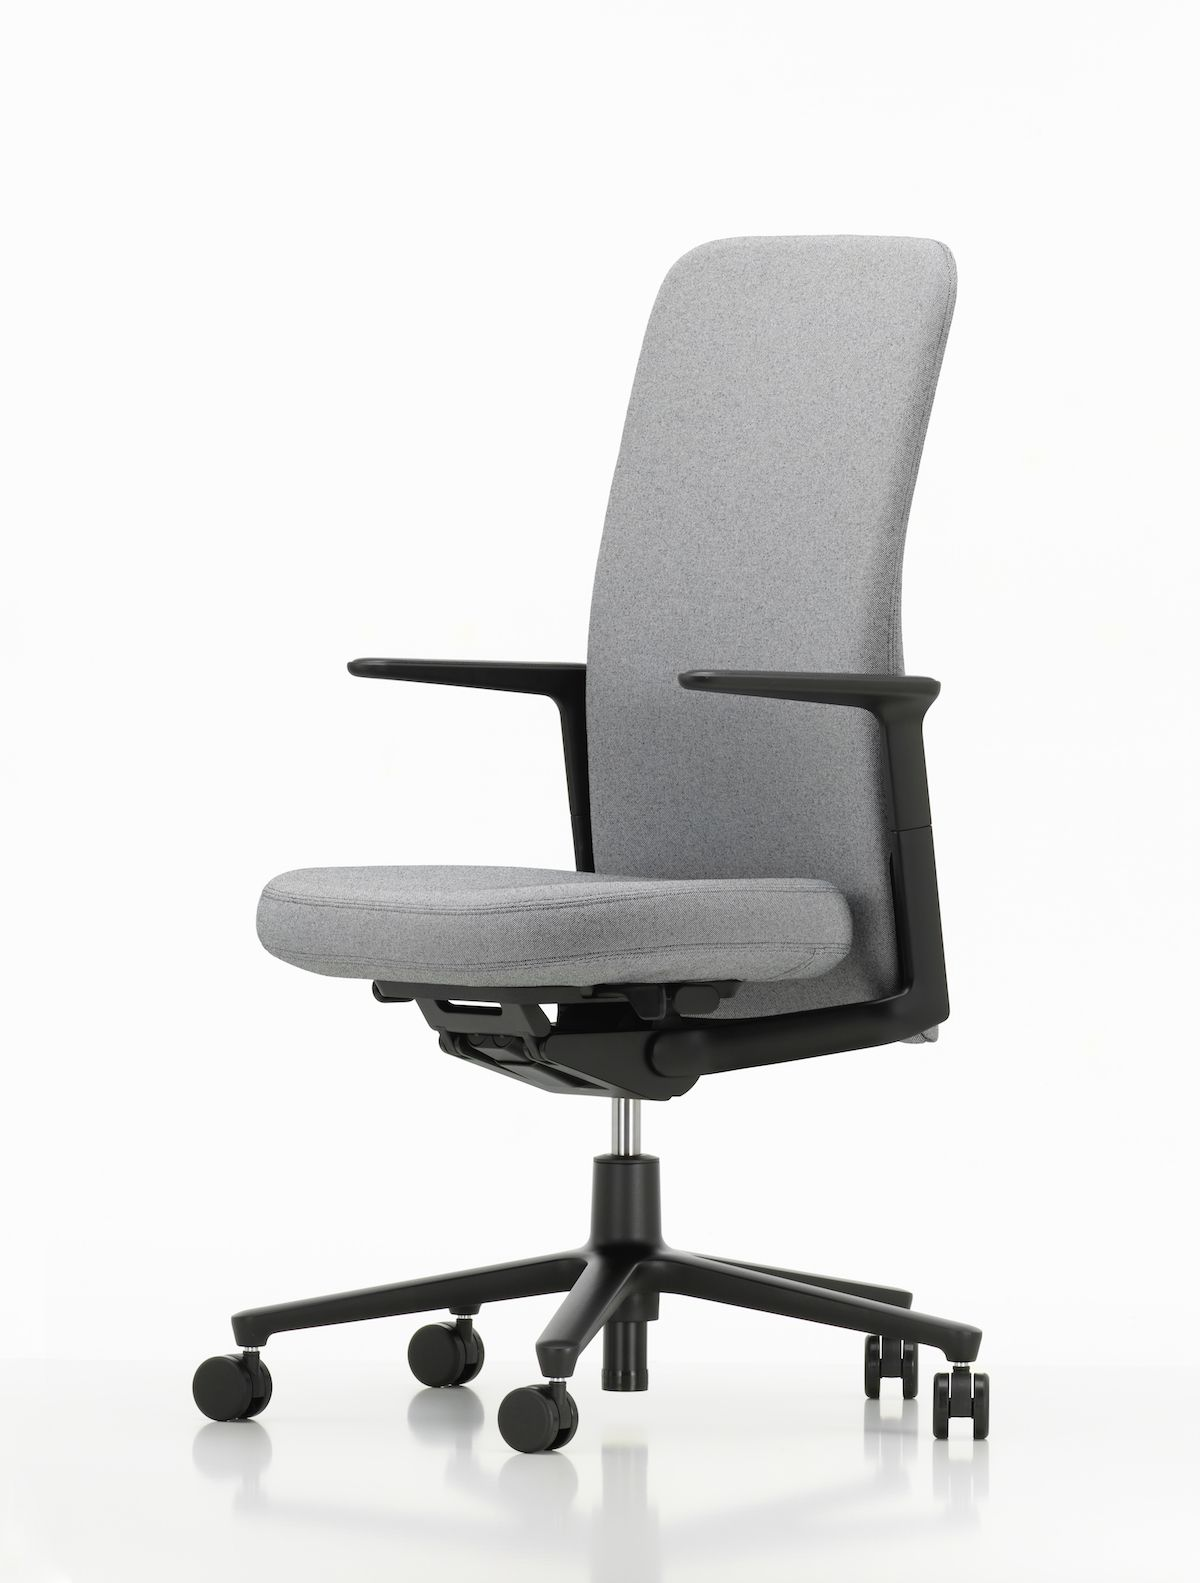 Pacific Chair By Edward Barber Jay Osgerby Office Chair Design Chair Vitra Chair